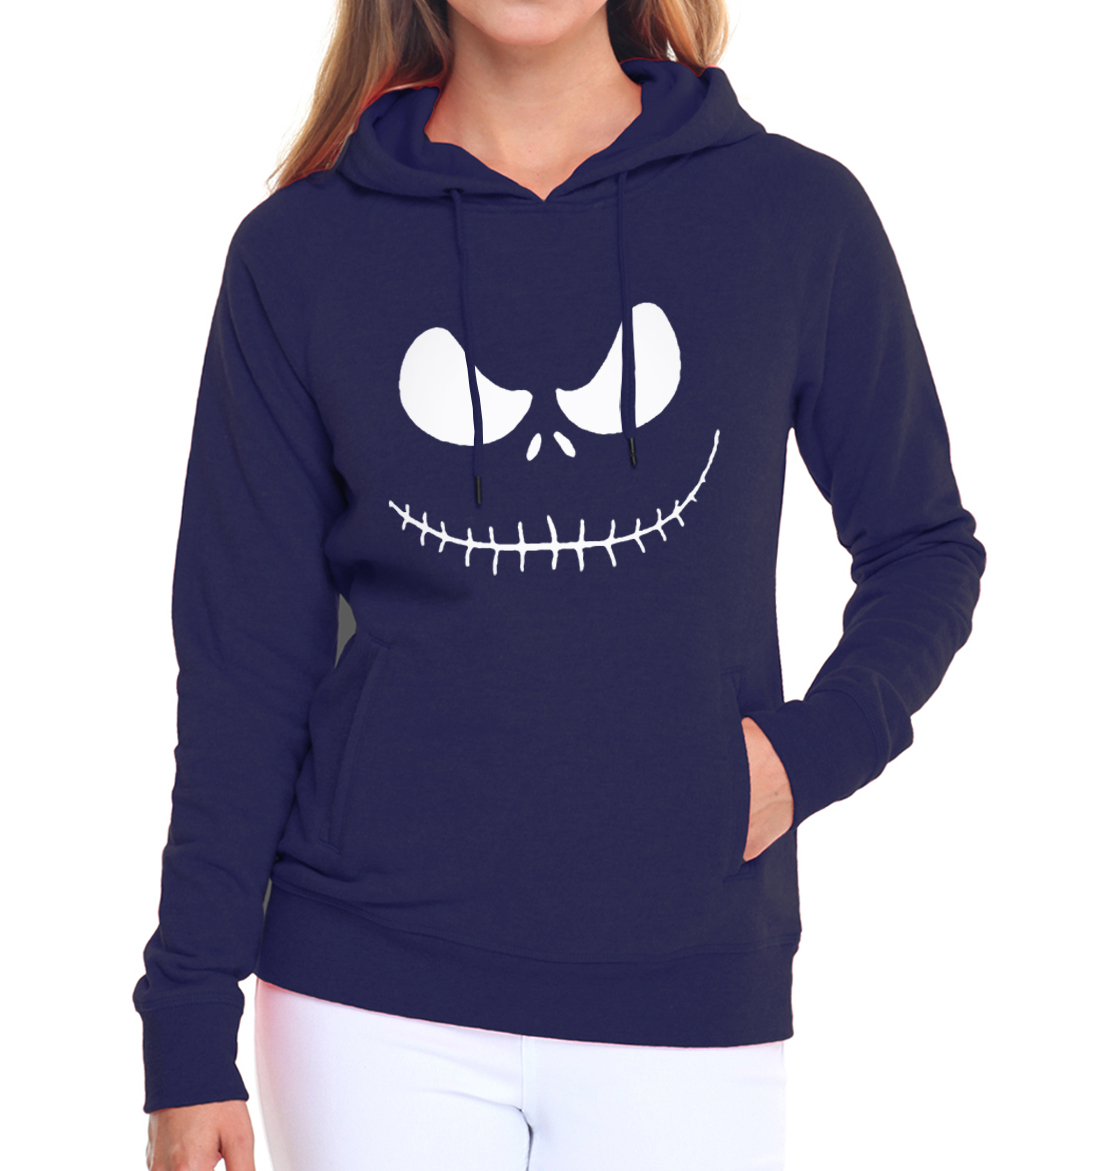 funny kpop Smile sweatshirts femme Jack Skellington tracksuits hoodies 2019 fashion fitness brand clothing hip hop pullovers mma